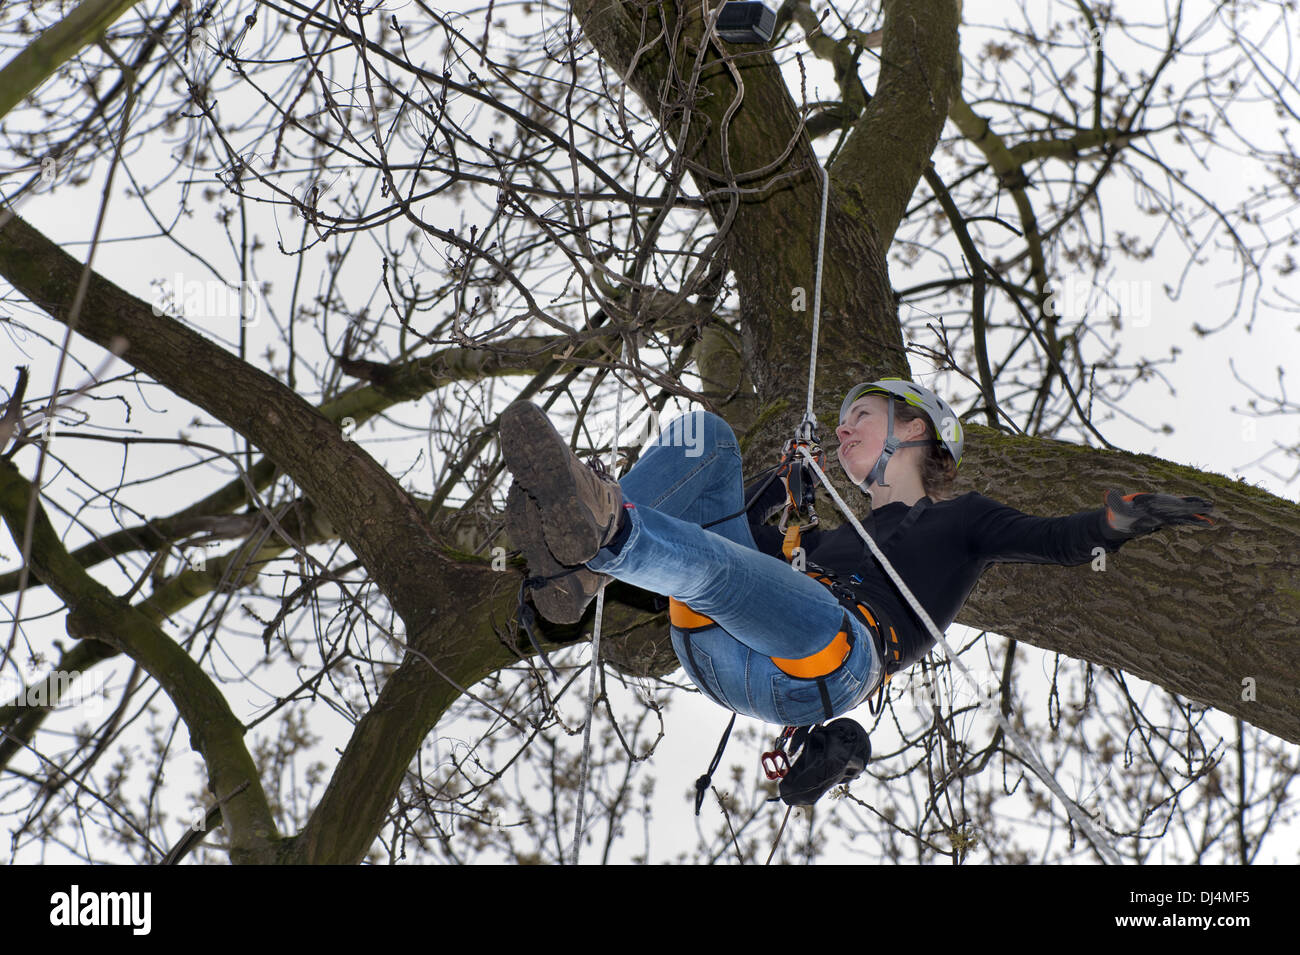 977bd0a28b9fc6 young woman when geocaching in a tree Stock Photo  62798825 - Alamy